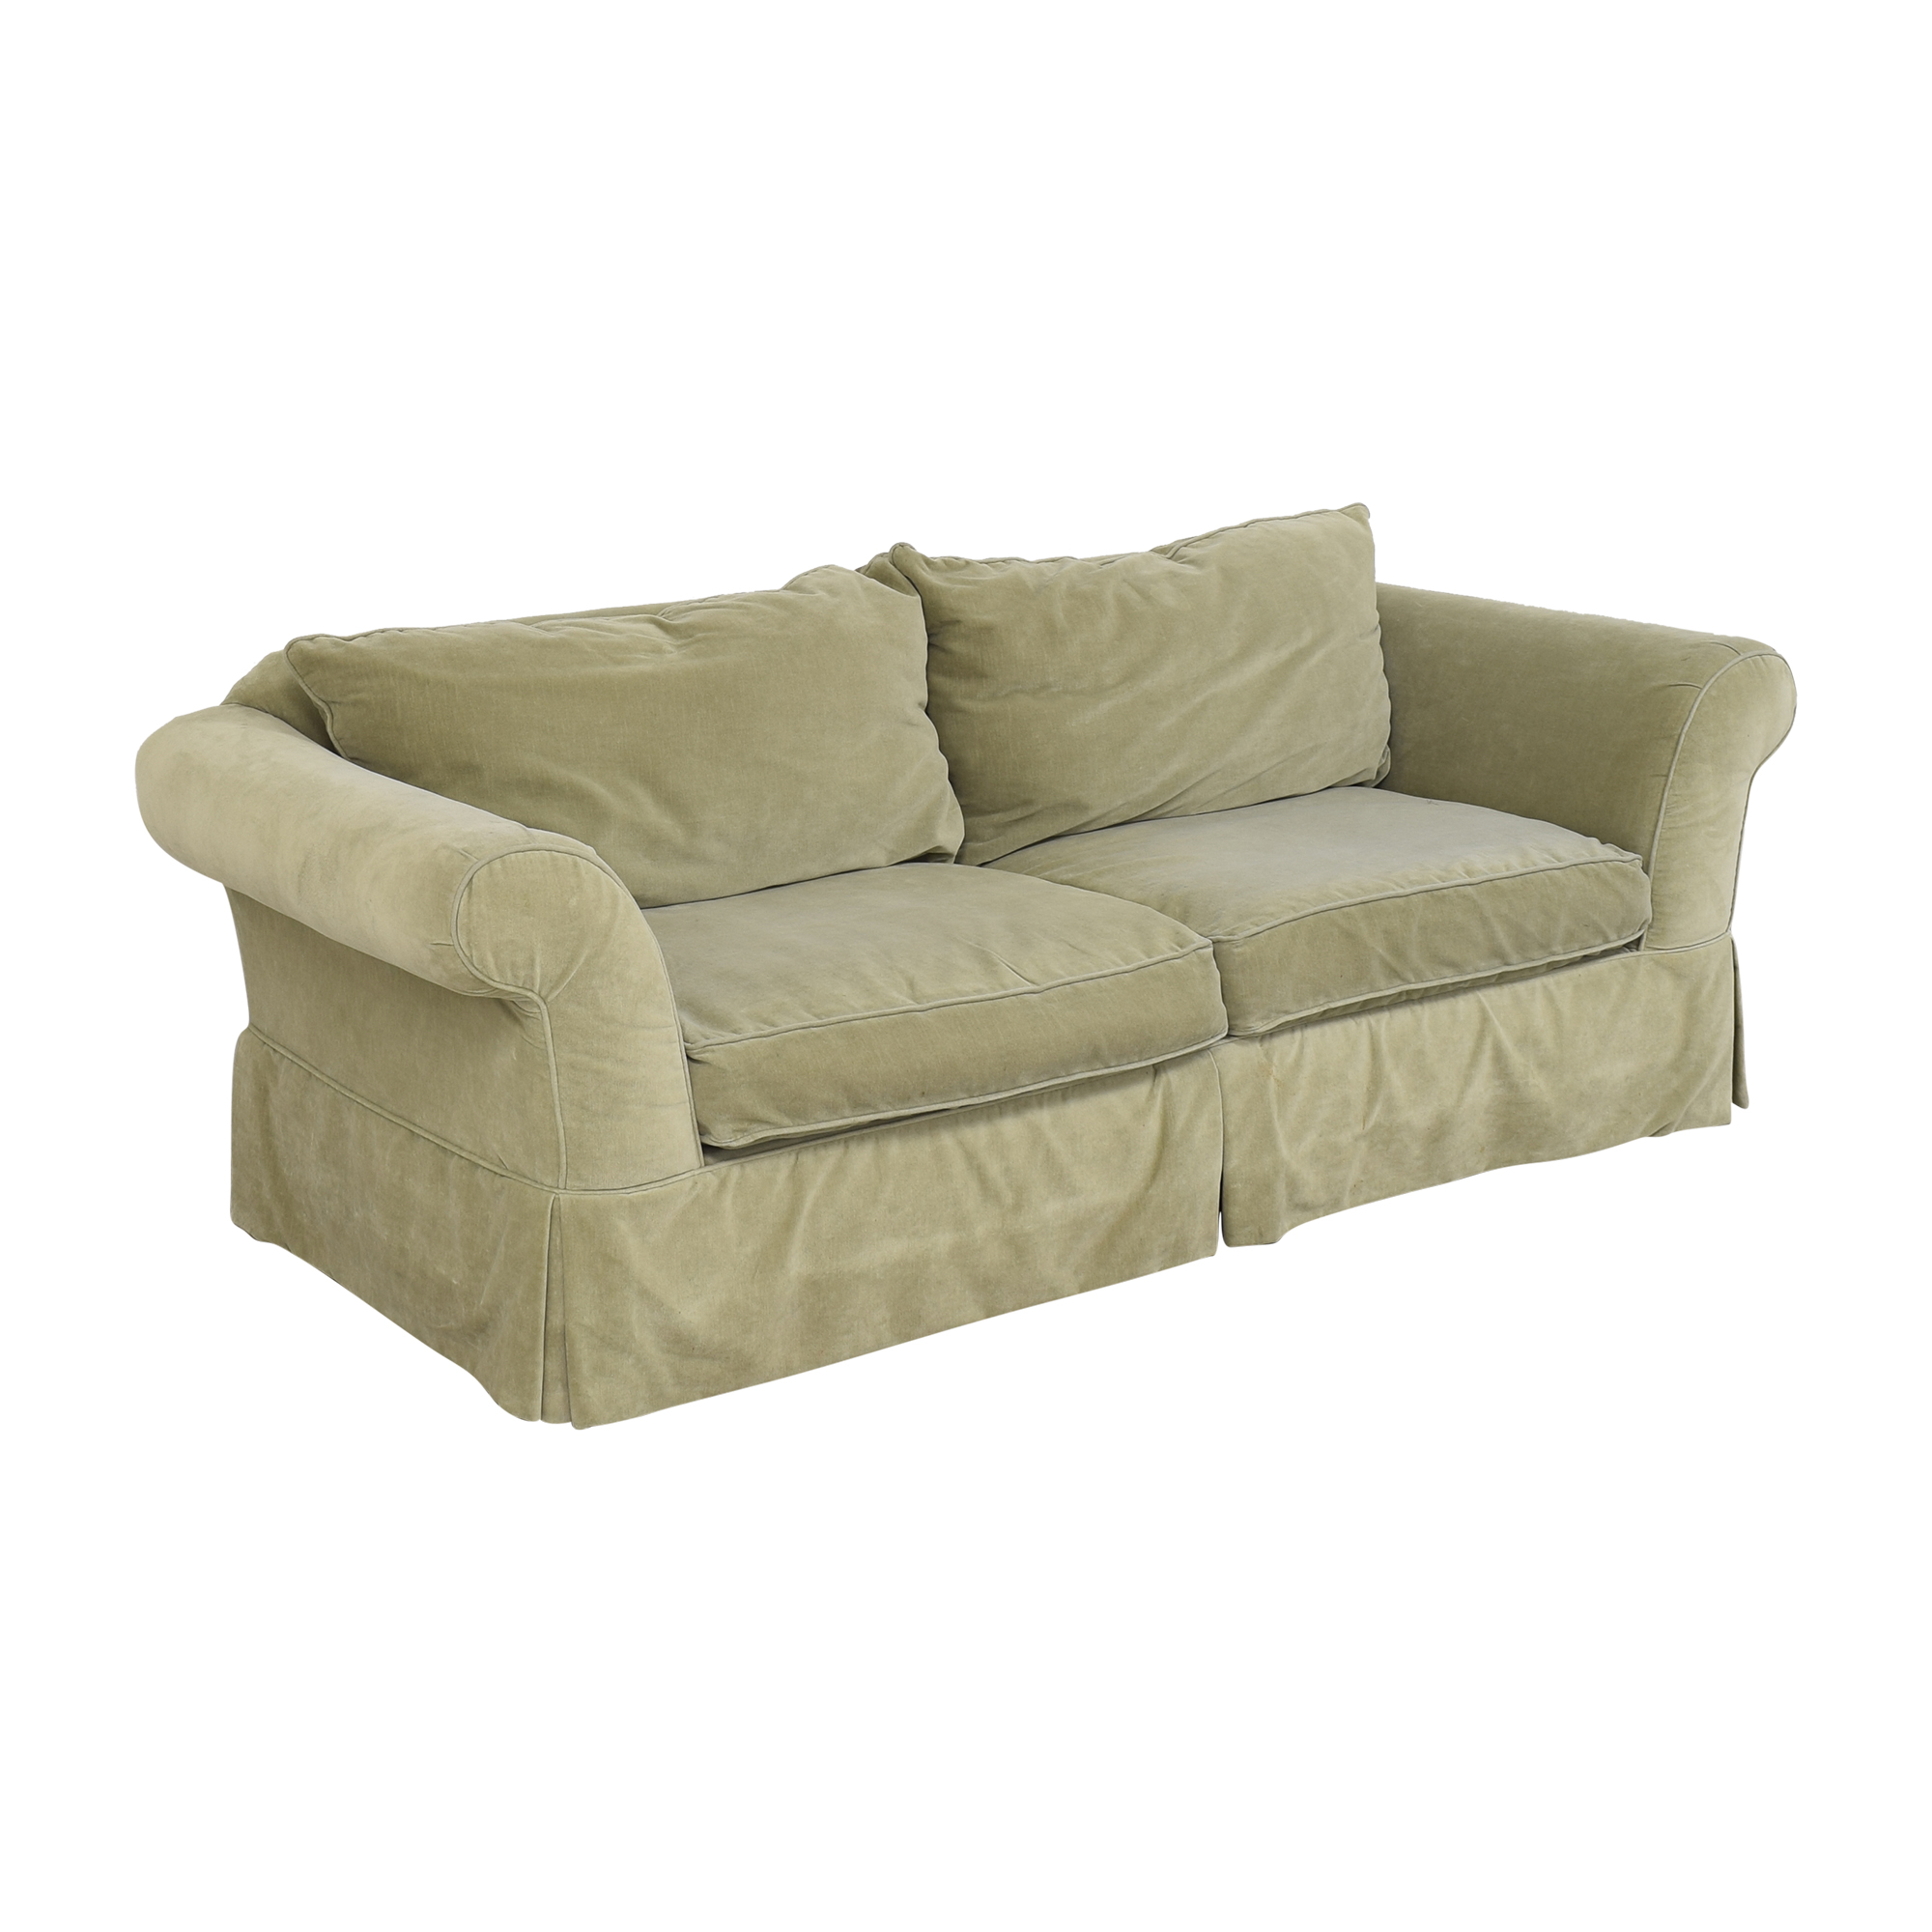 Southern Furniture of Conover Southern of Conover Roll Arm Sofa ma